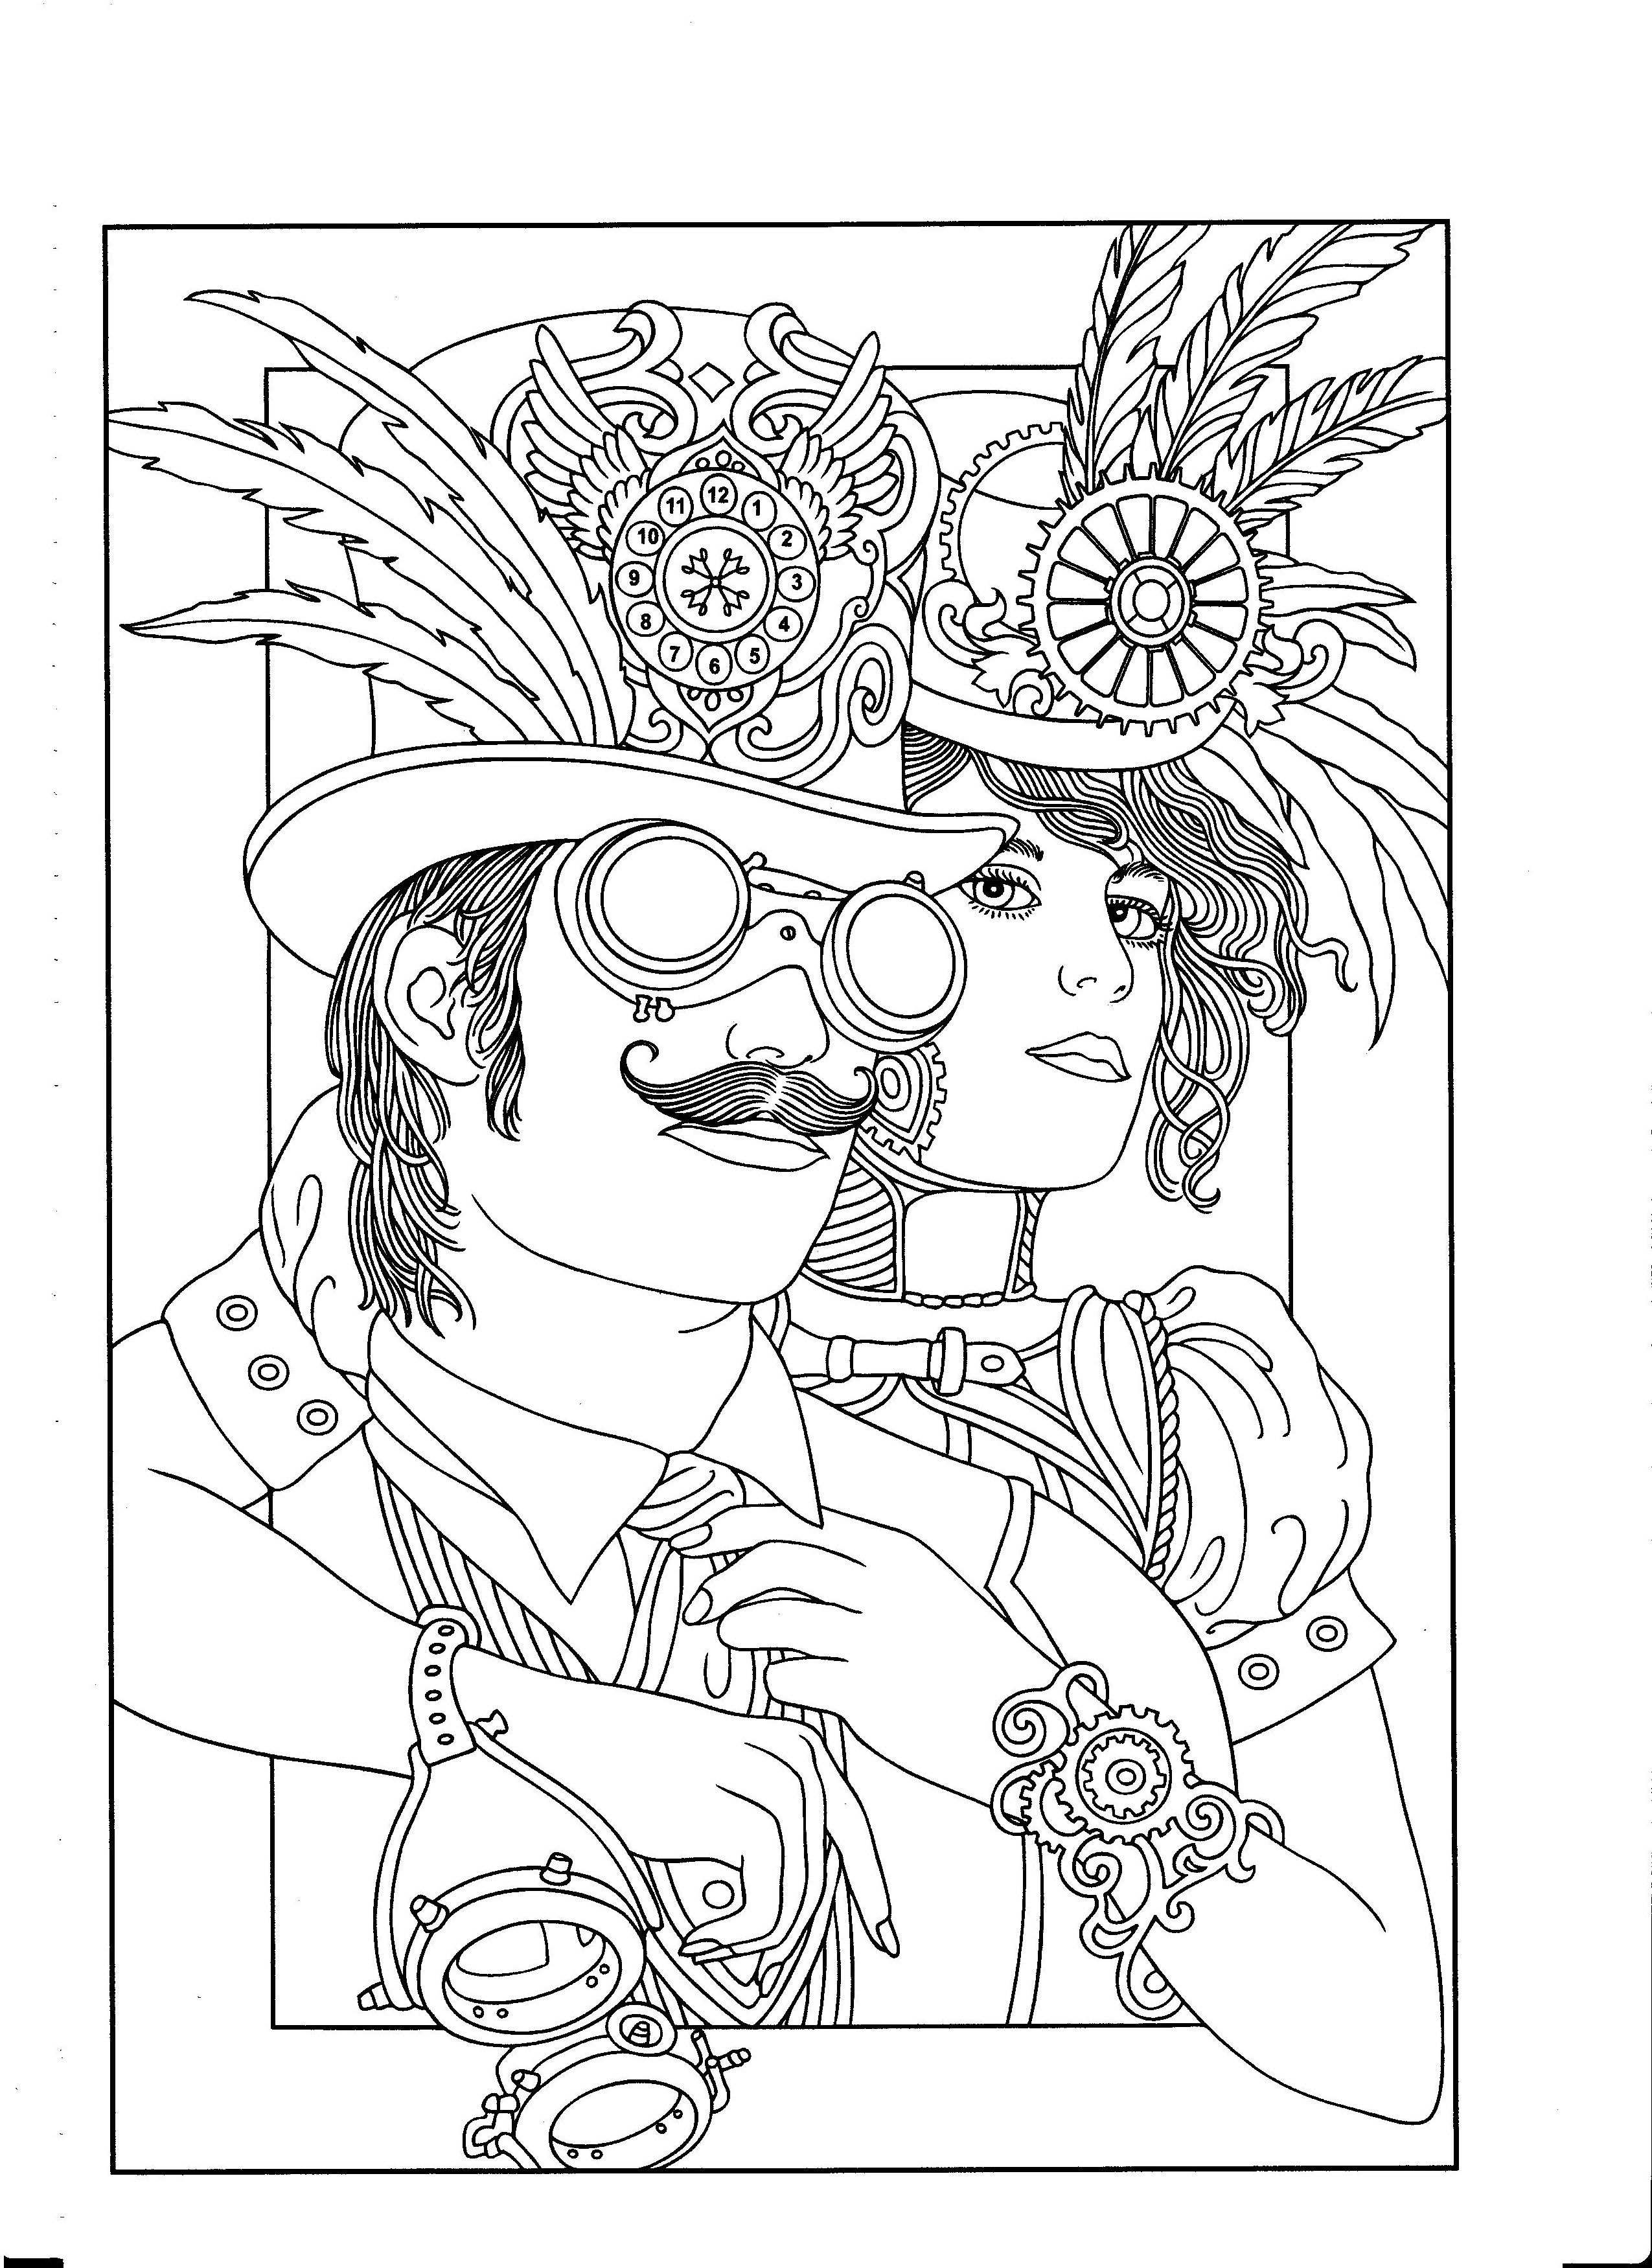 Steampunk Adult Coloring. Artwork by Marty Noble. Creative